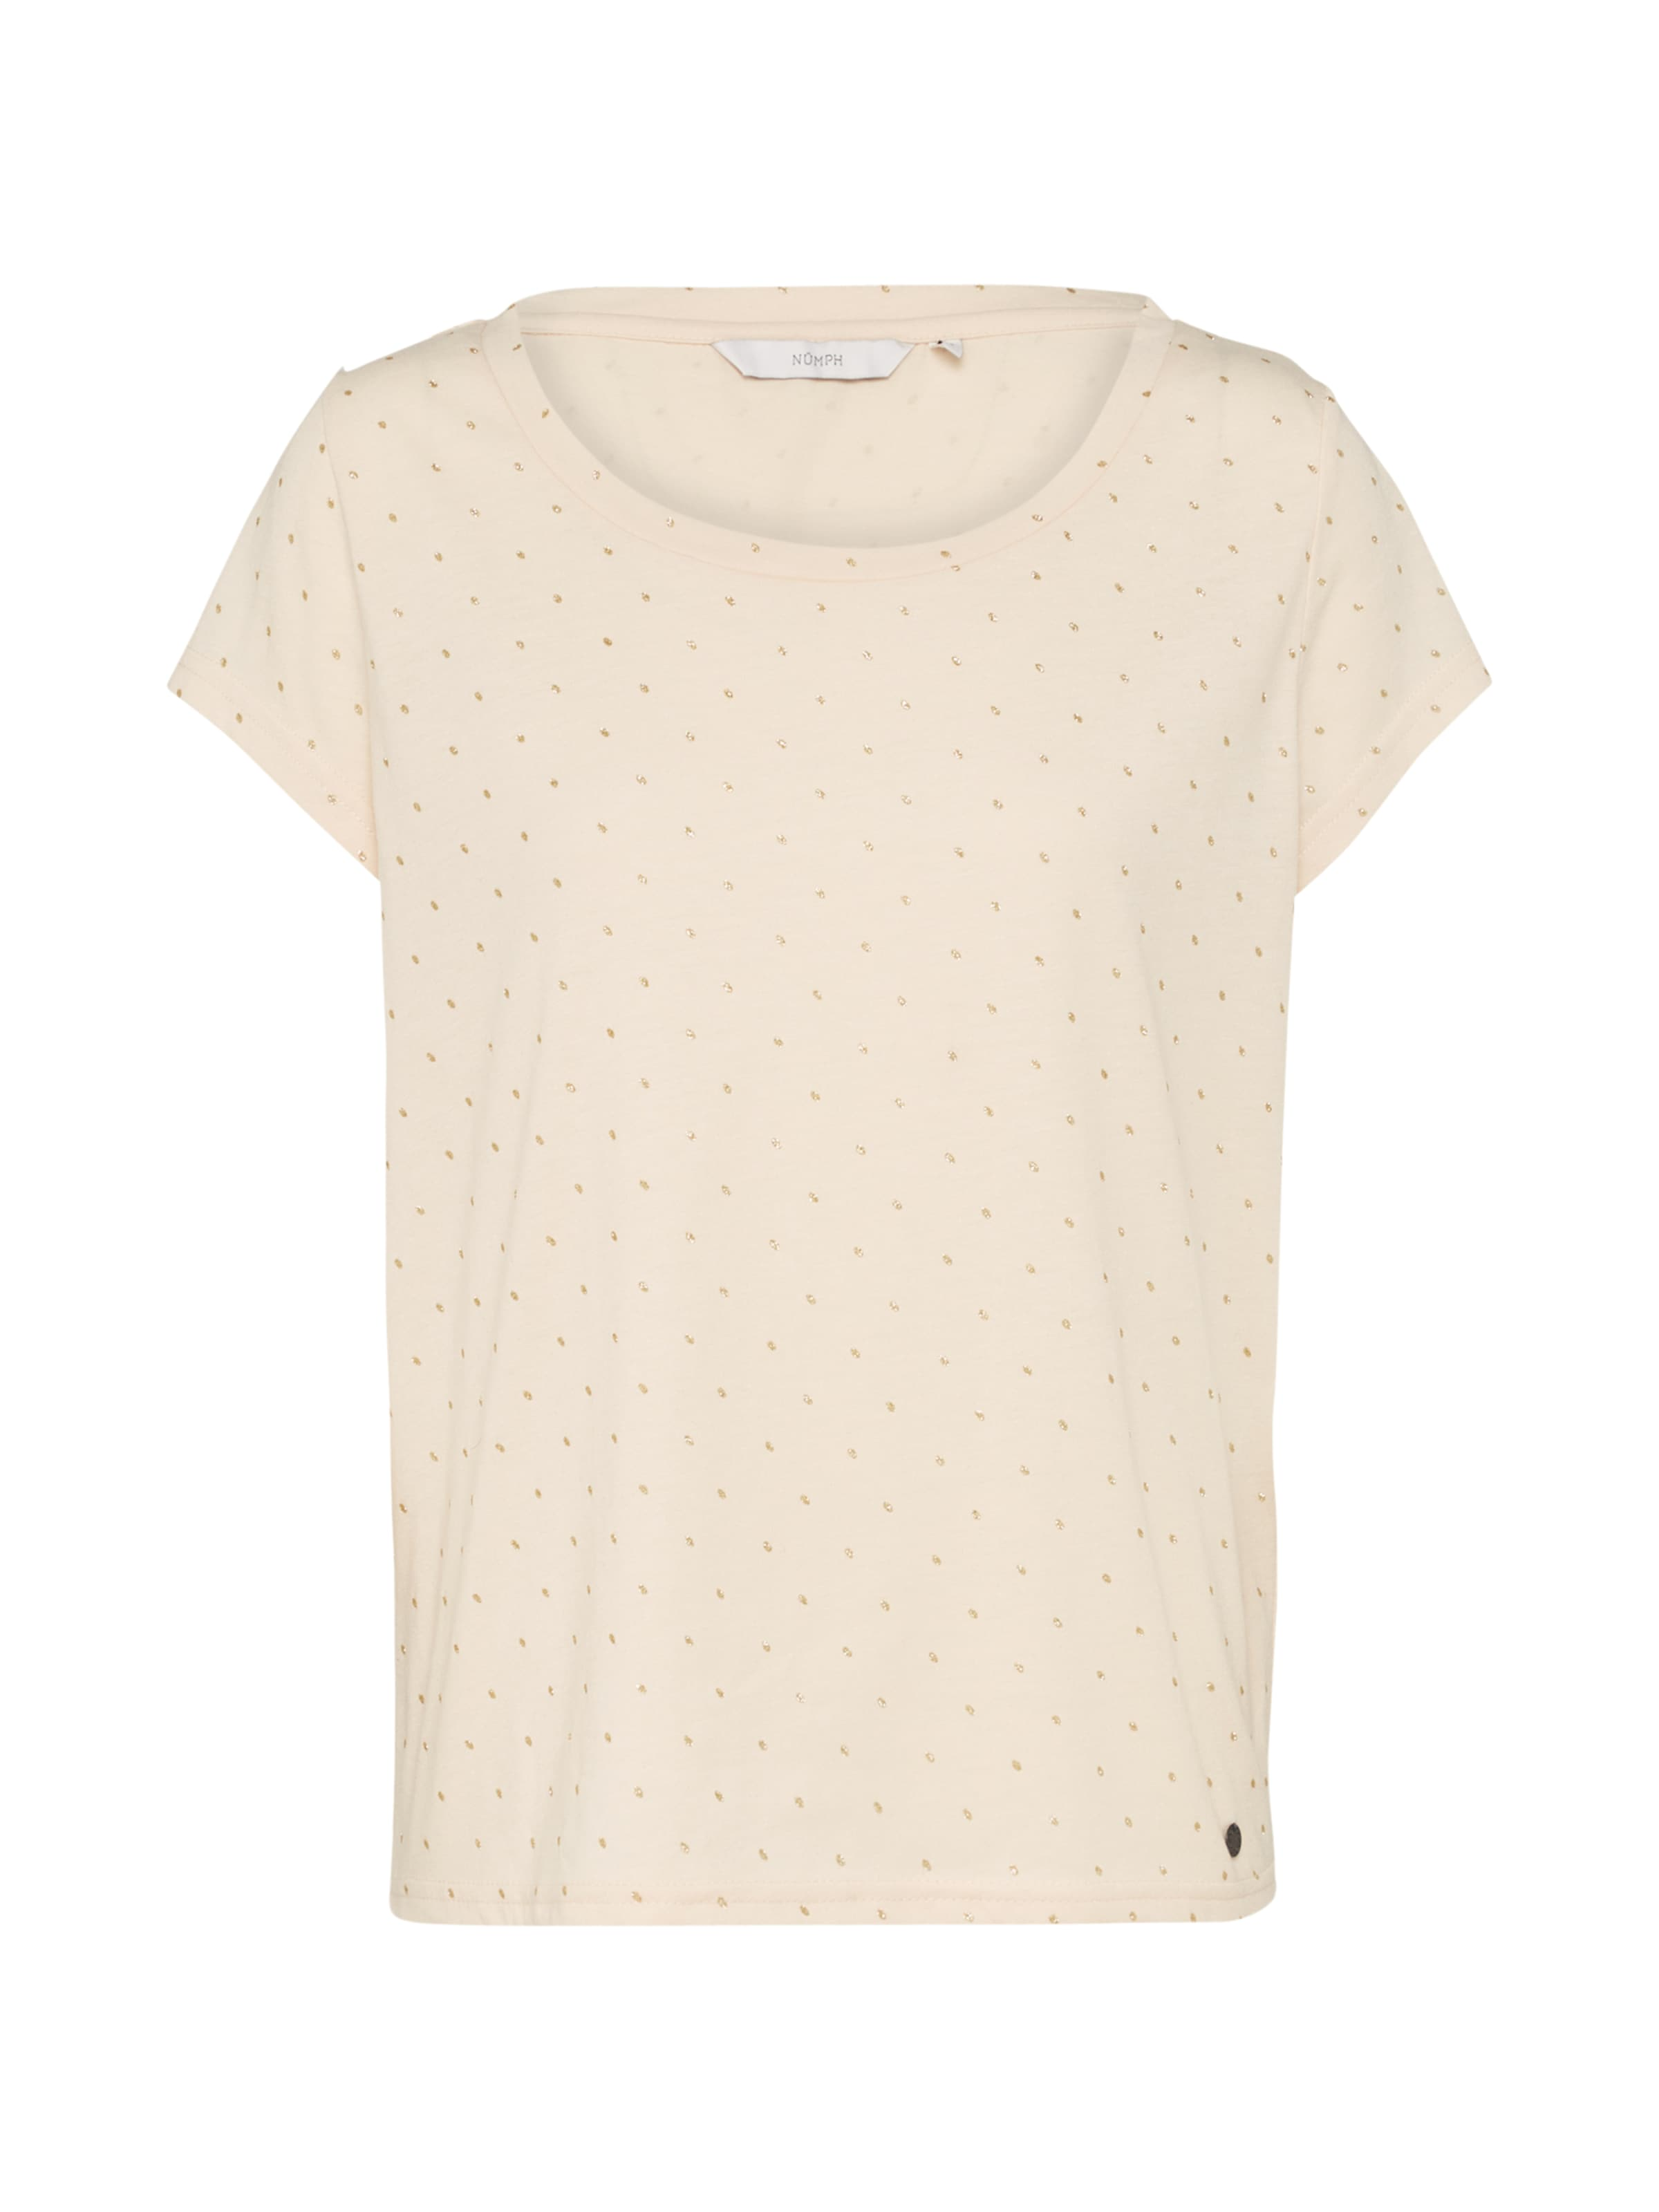 NümphT Gry' In shirt OrPoudre 'new NP8nXZOk0w